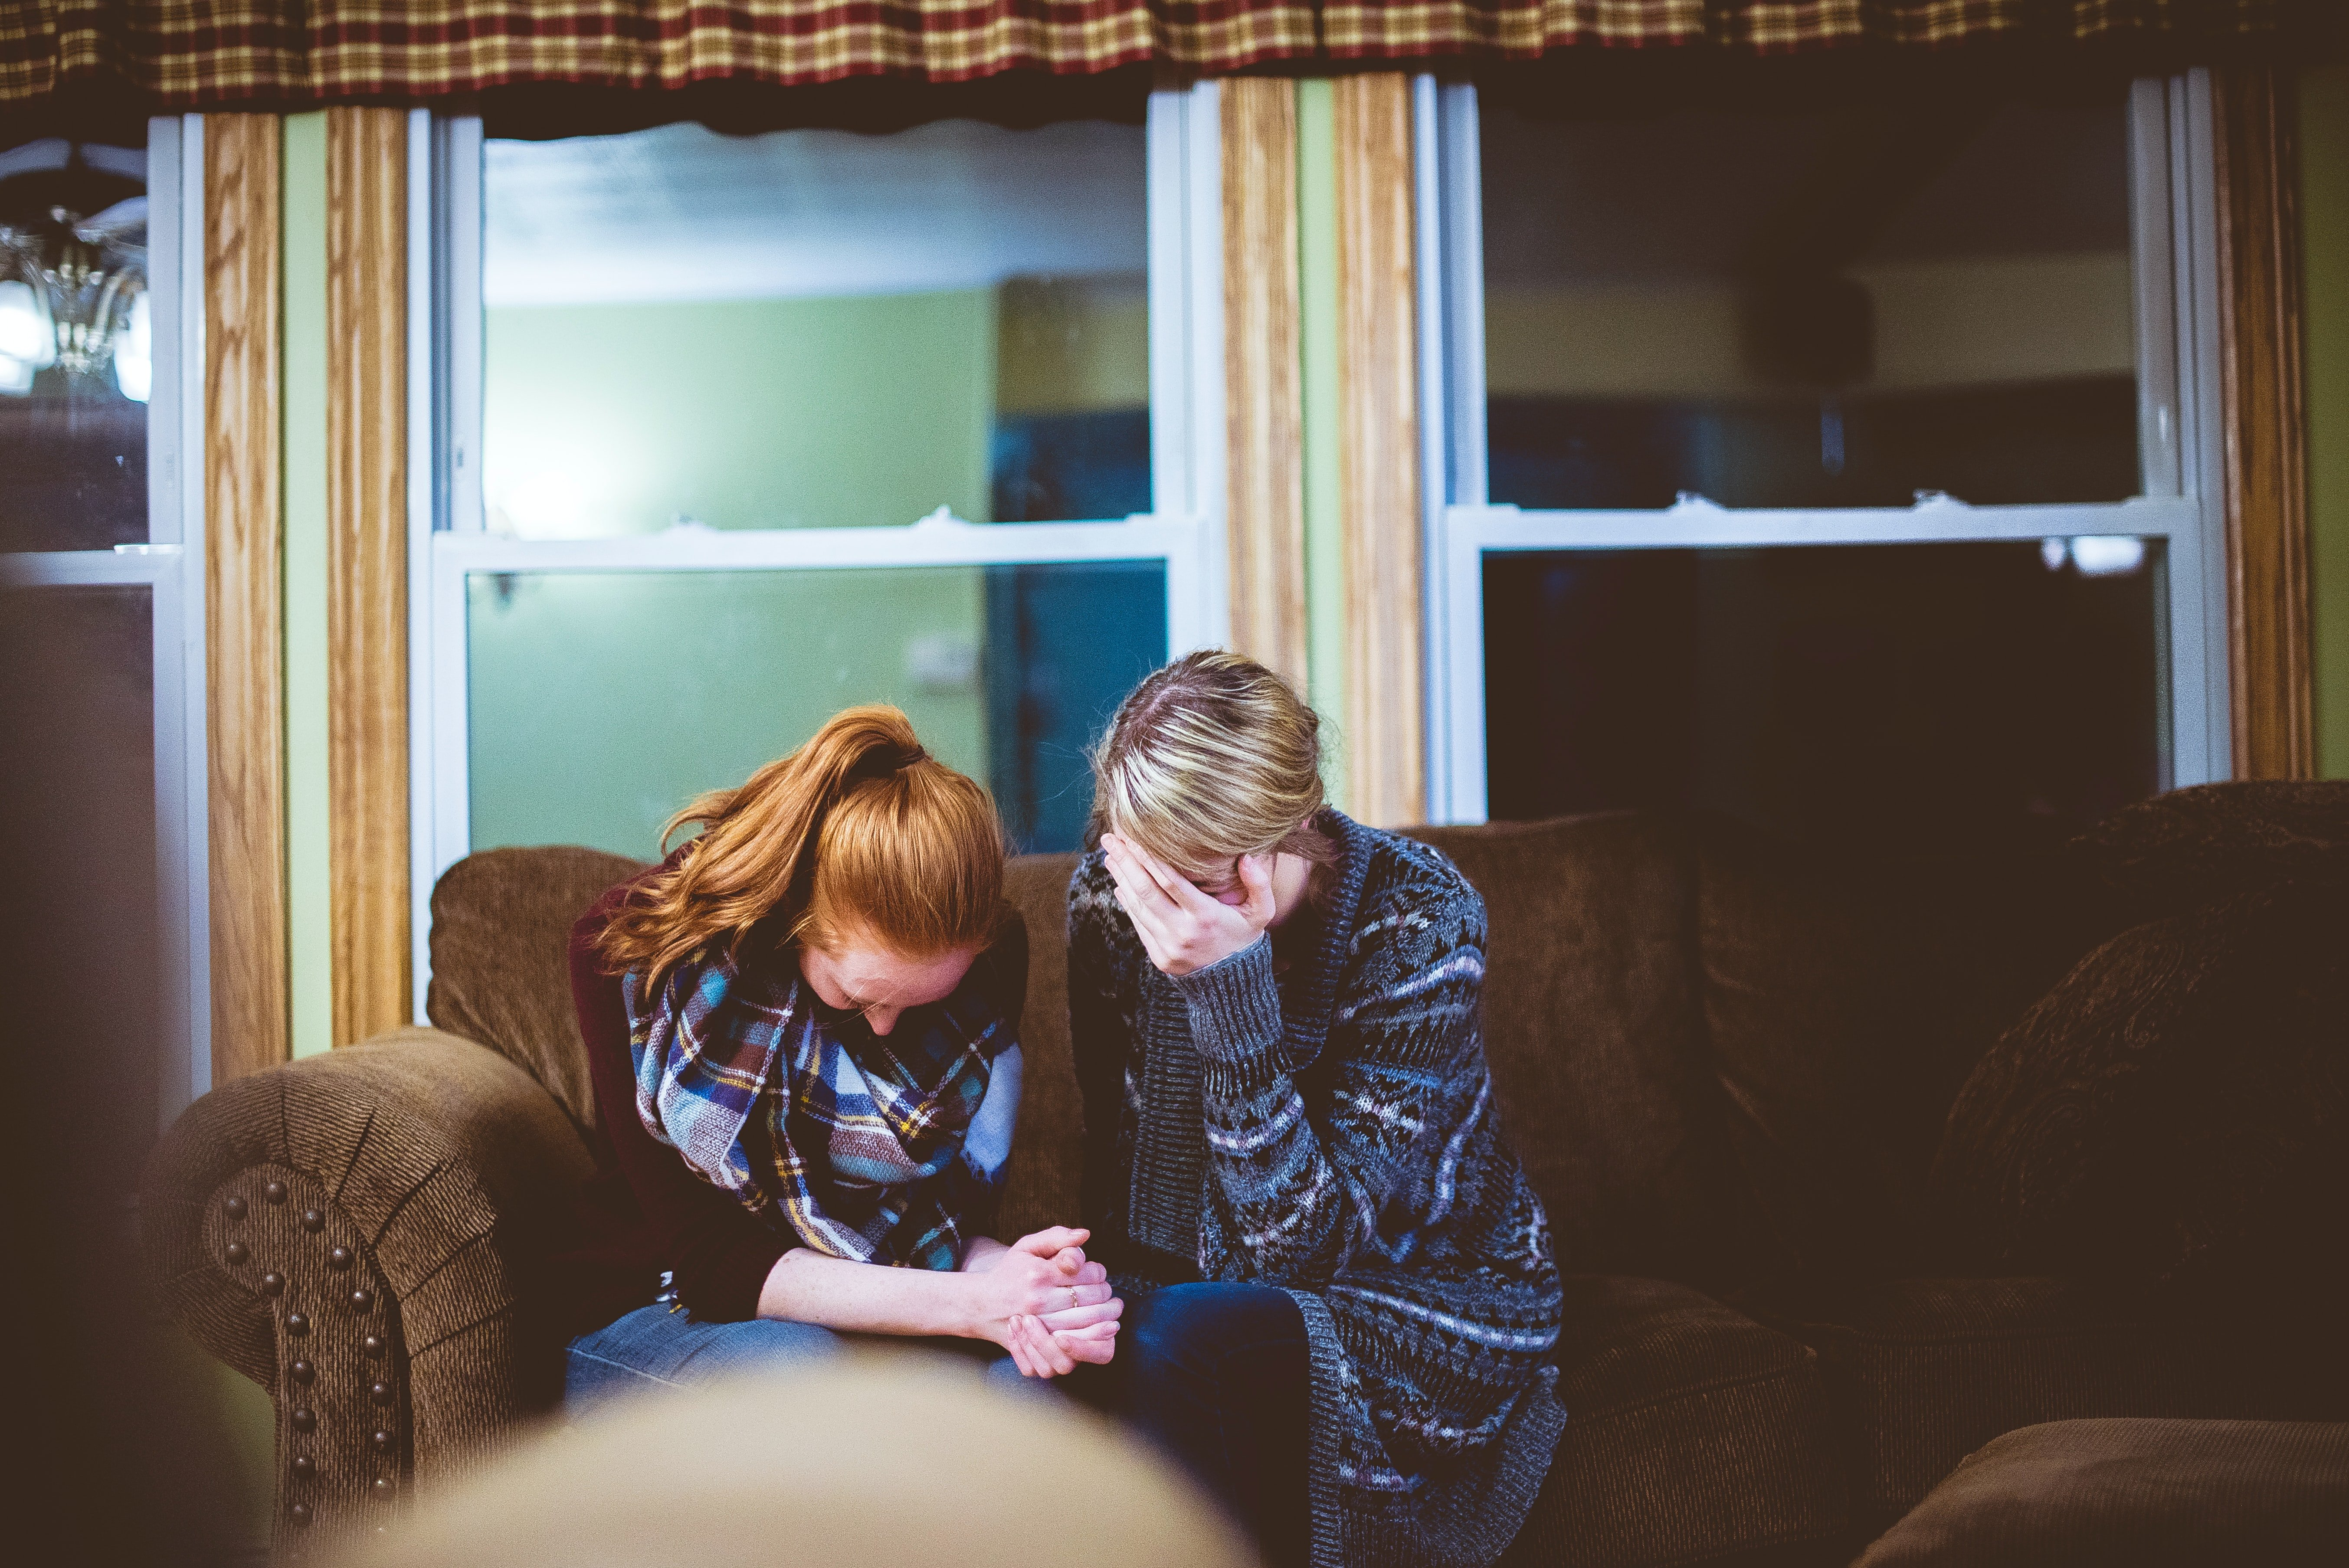 Distressed women sitting on a couch | Photo: Unsplash